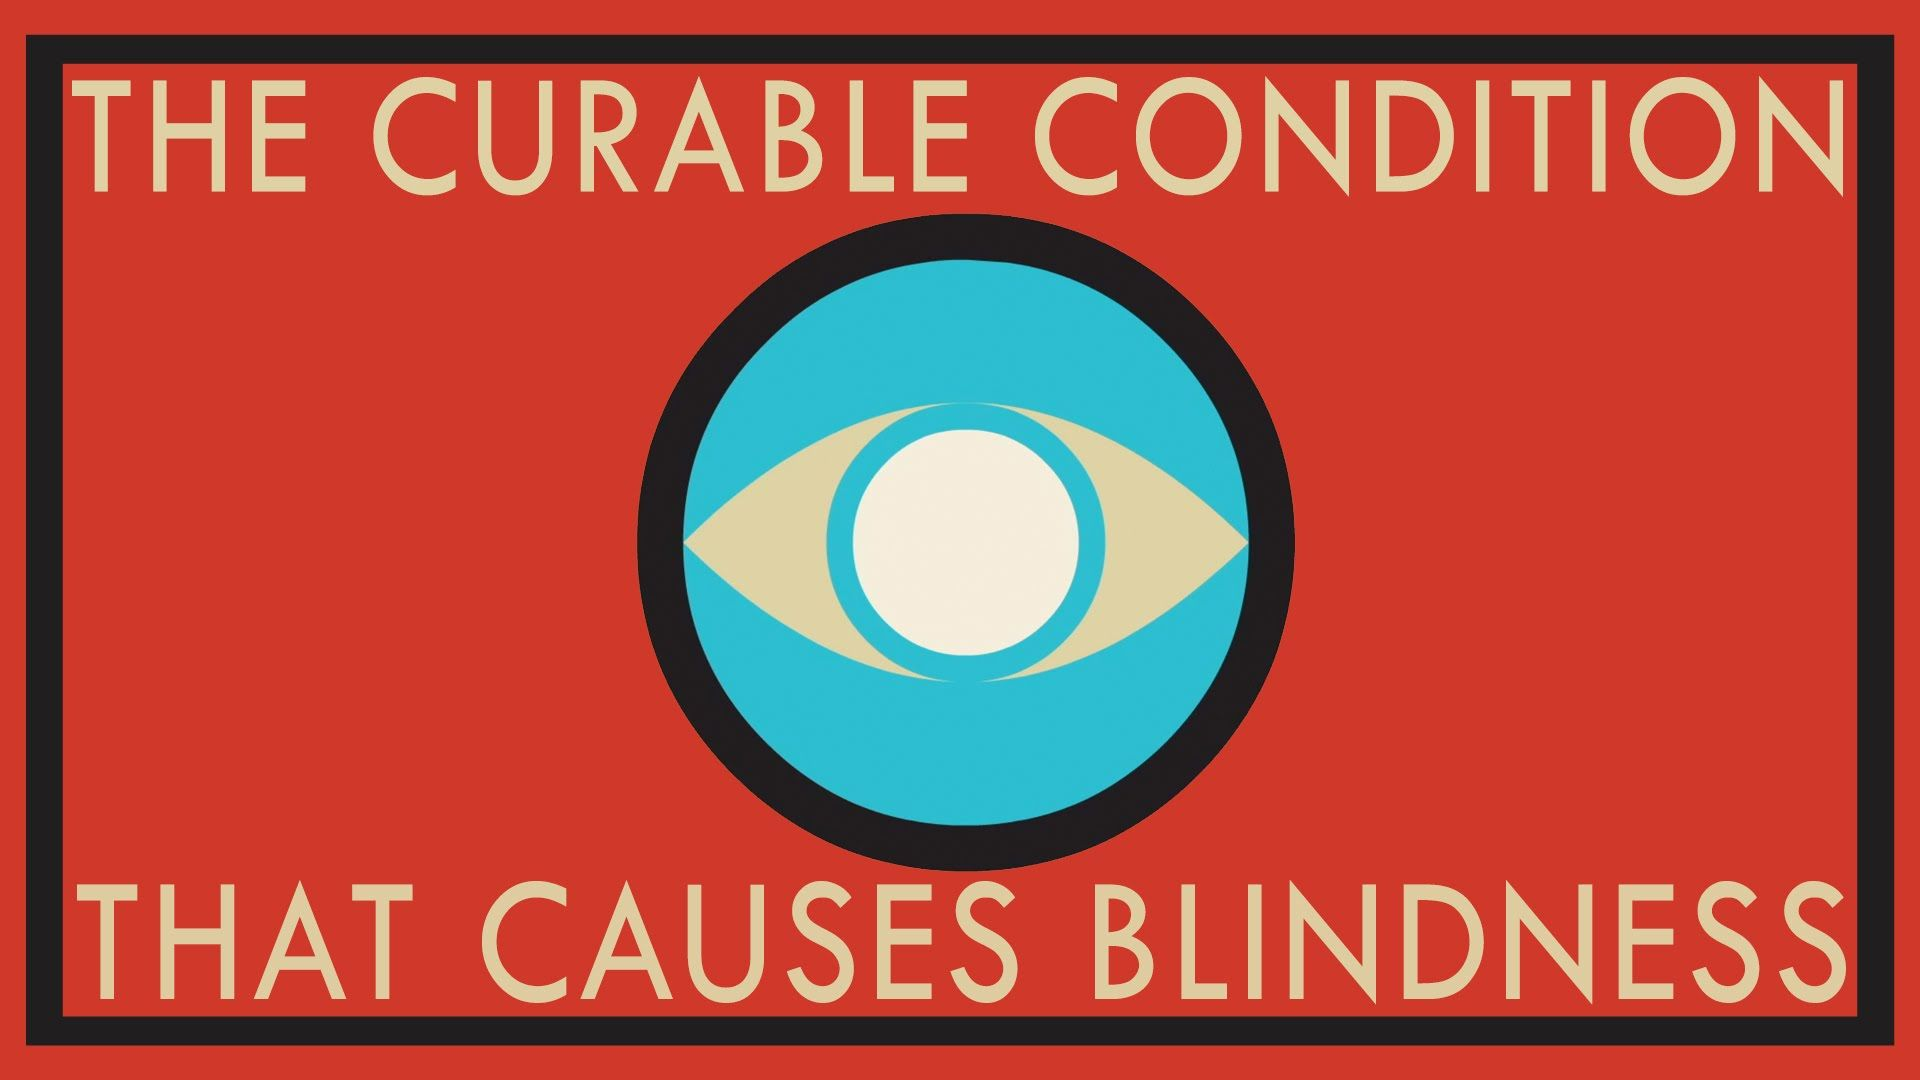 A curable condition that causes blindness